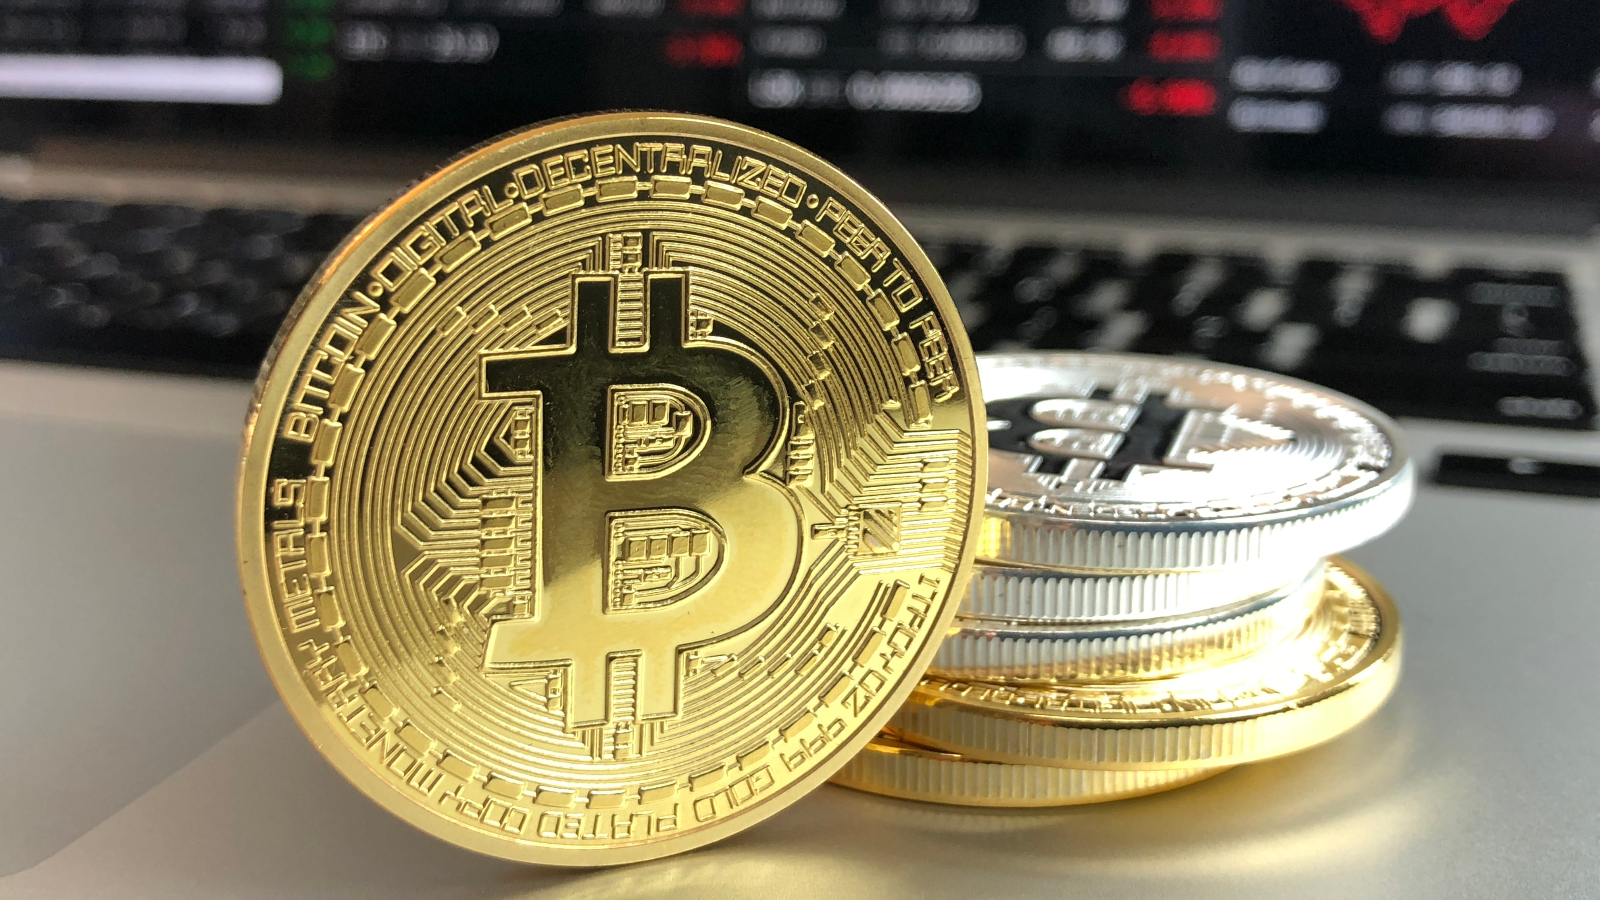 Does the Bitcoin Defense as a Store of Value Weaken with the Coin's Volatility?